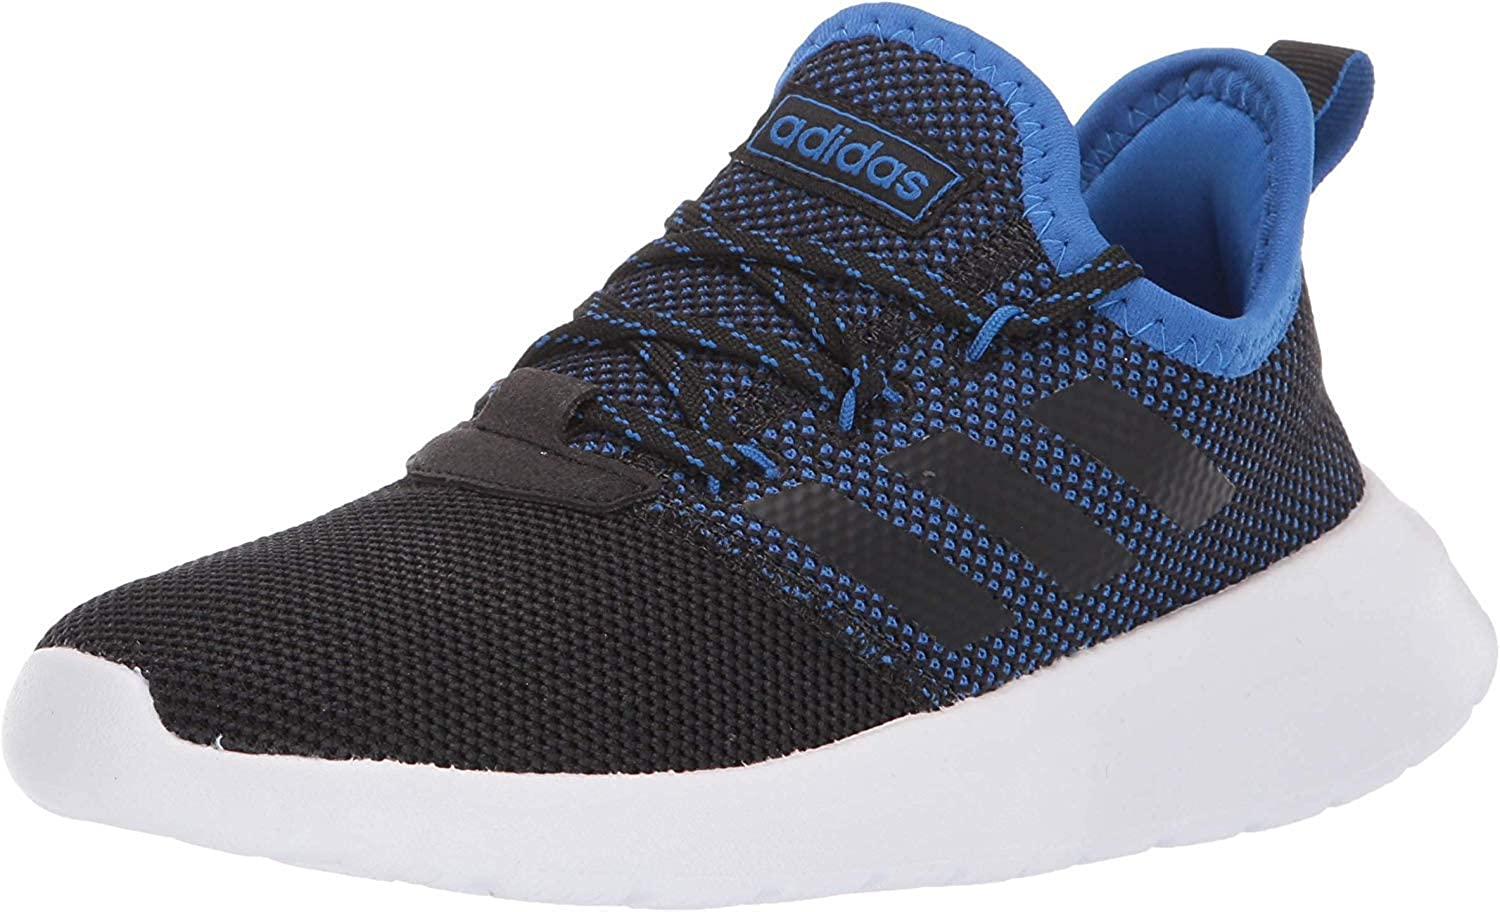 adidas shoes size 3 online -